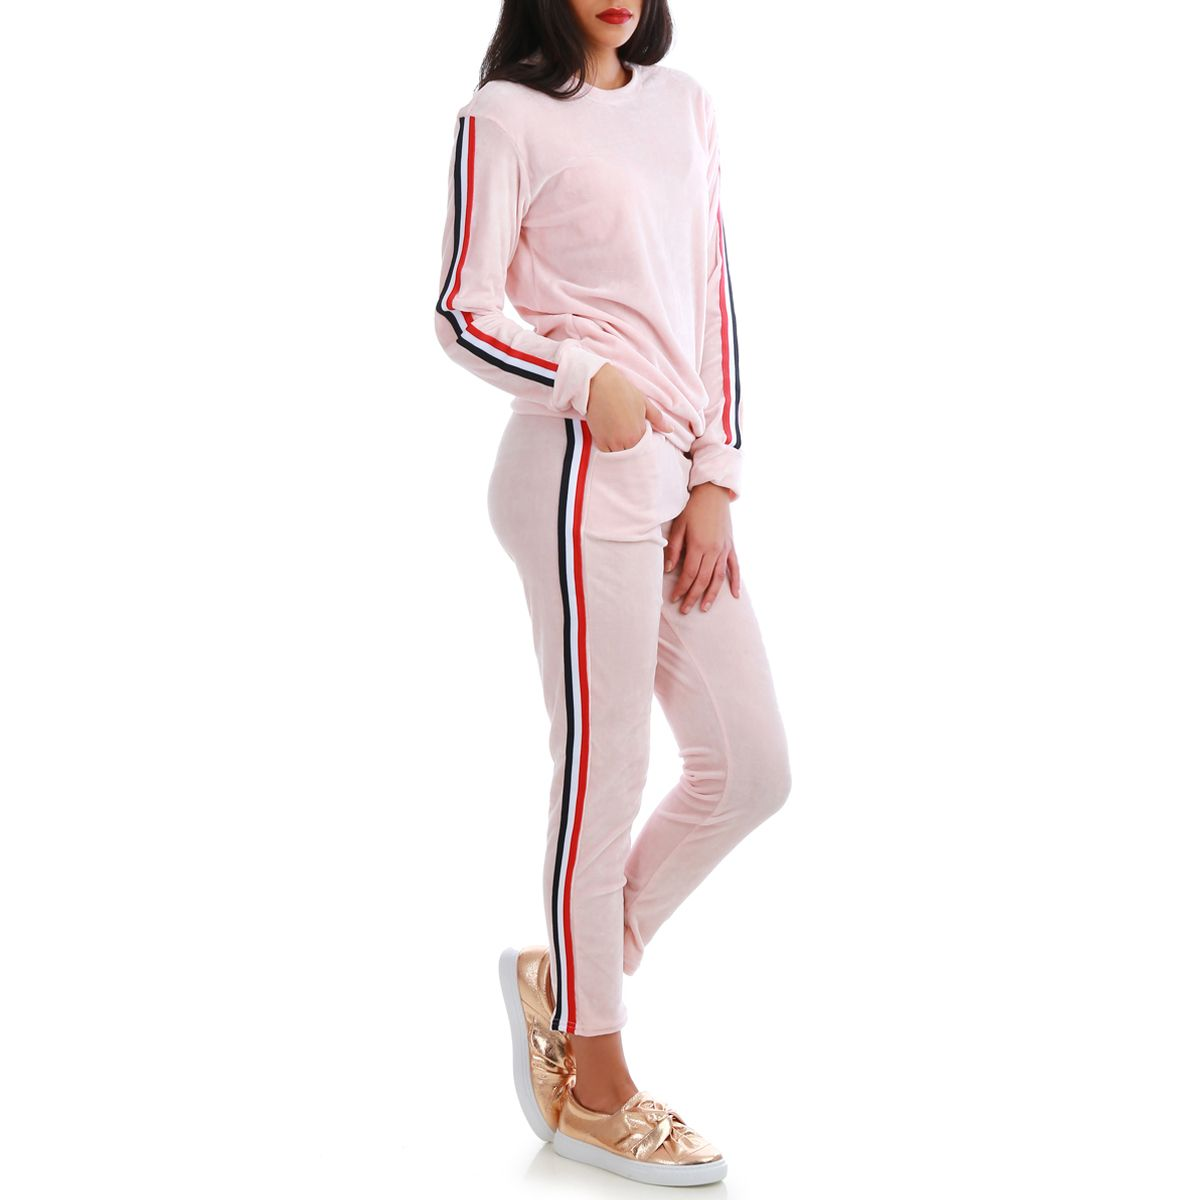 c65ecd2cb30a0 Ensemble sweat et pantalon de jogging rose à bandes tricolore. Loading zoom